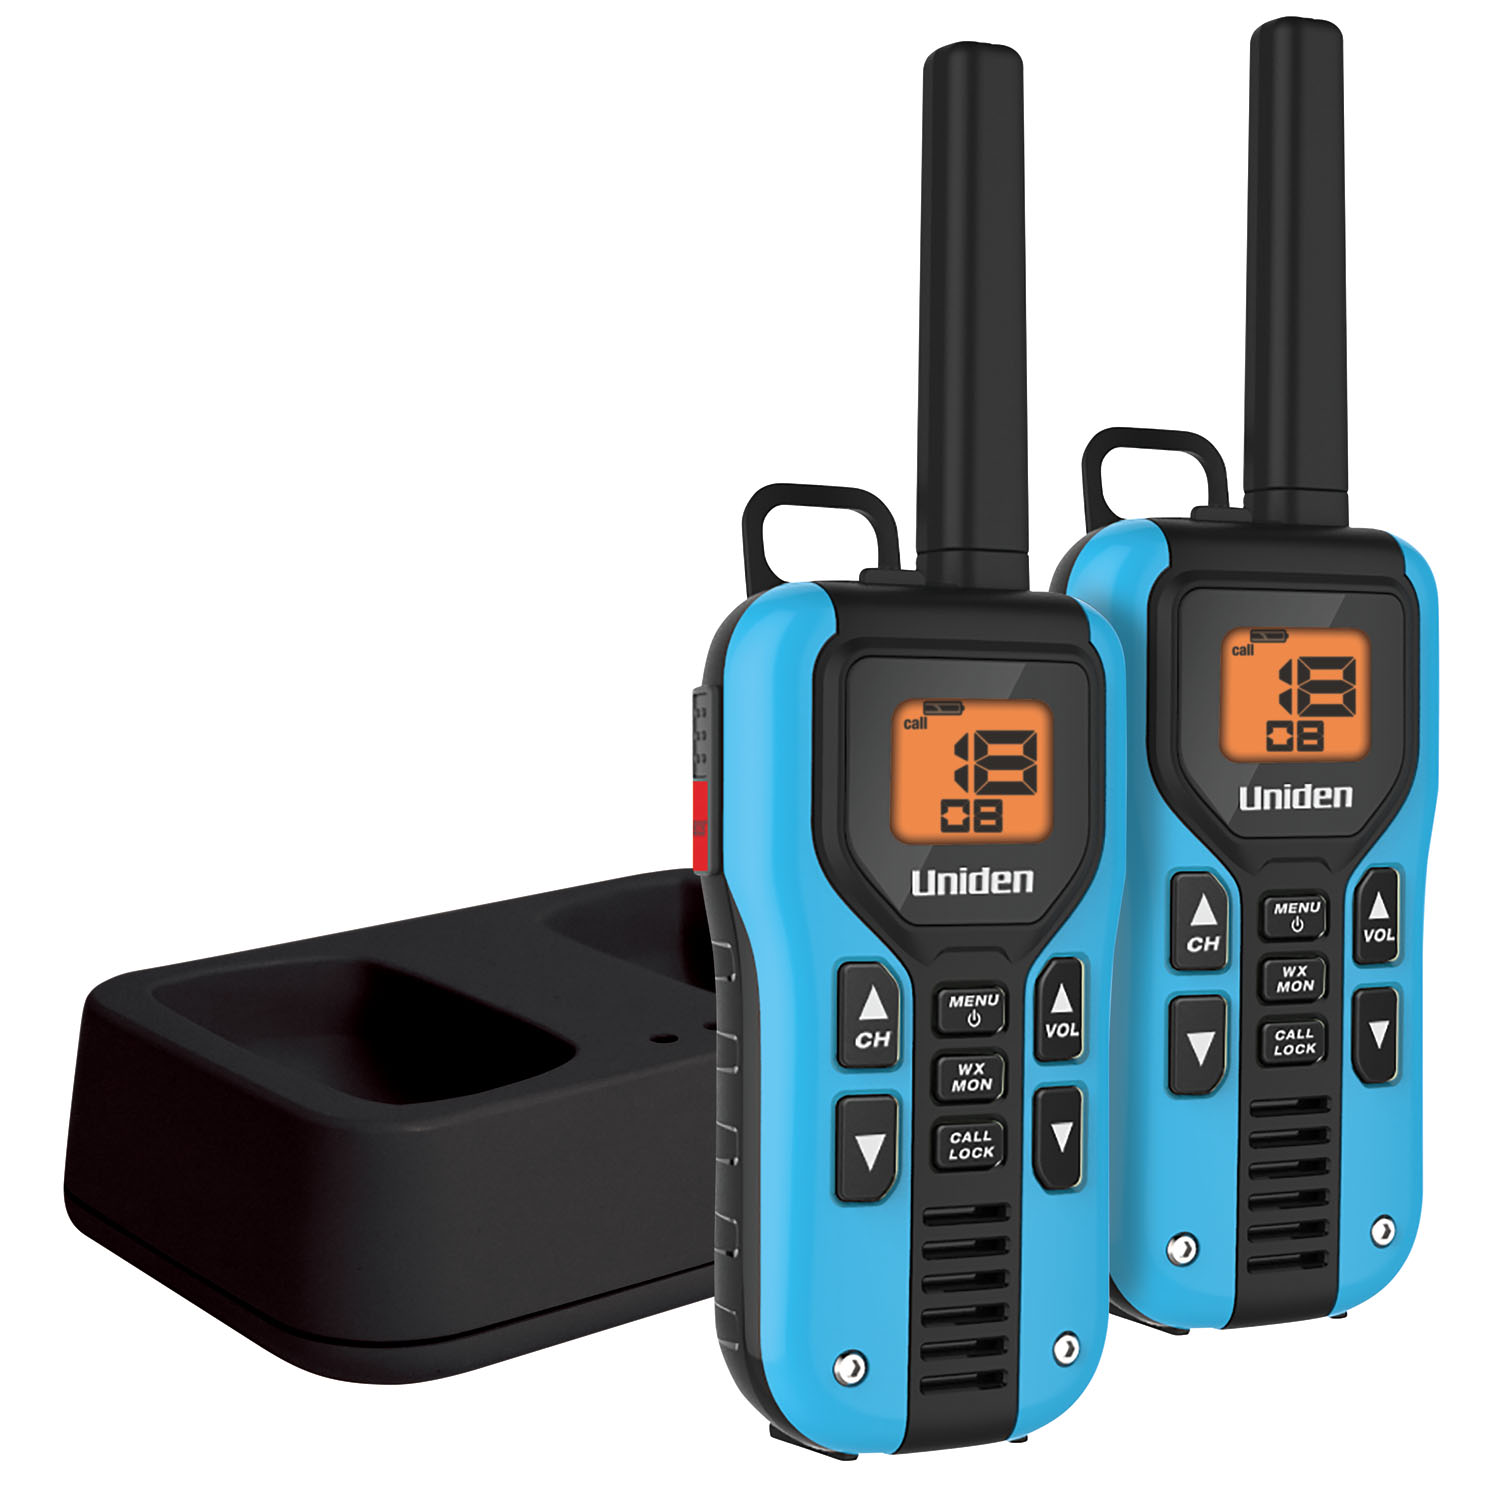 GMR4055-2CK - Uniden Two-Way Radio Pair